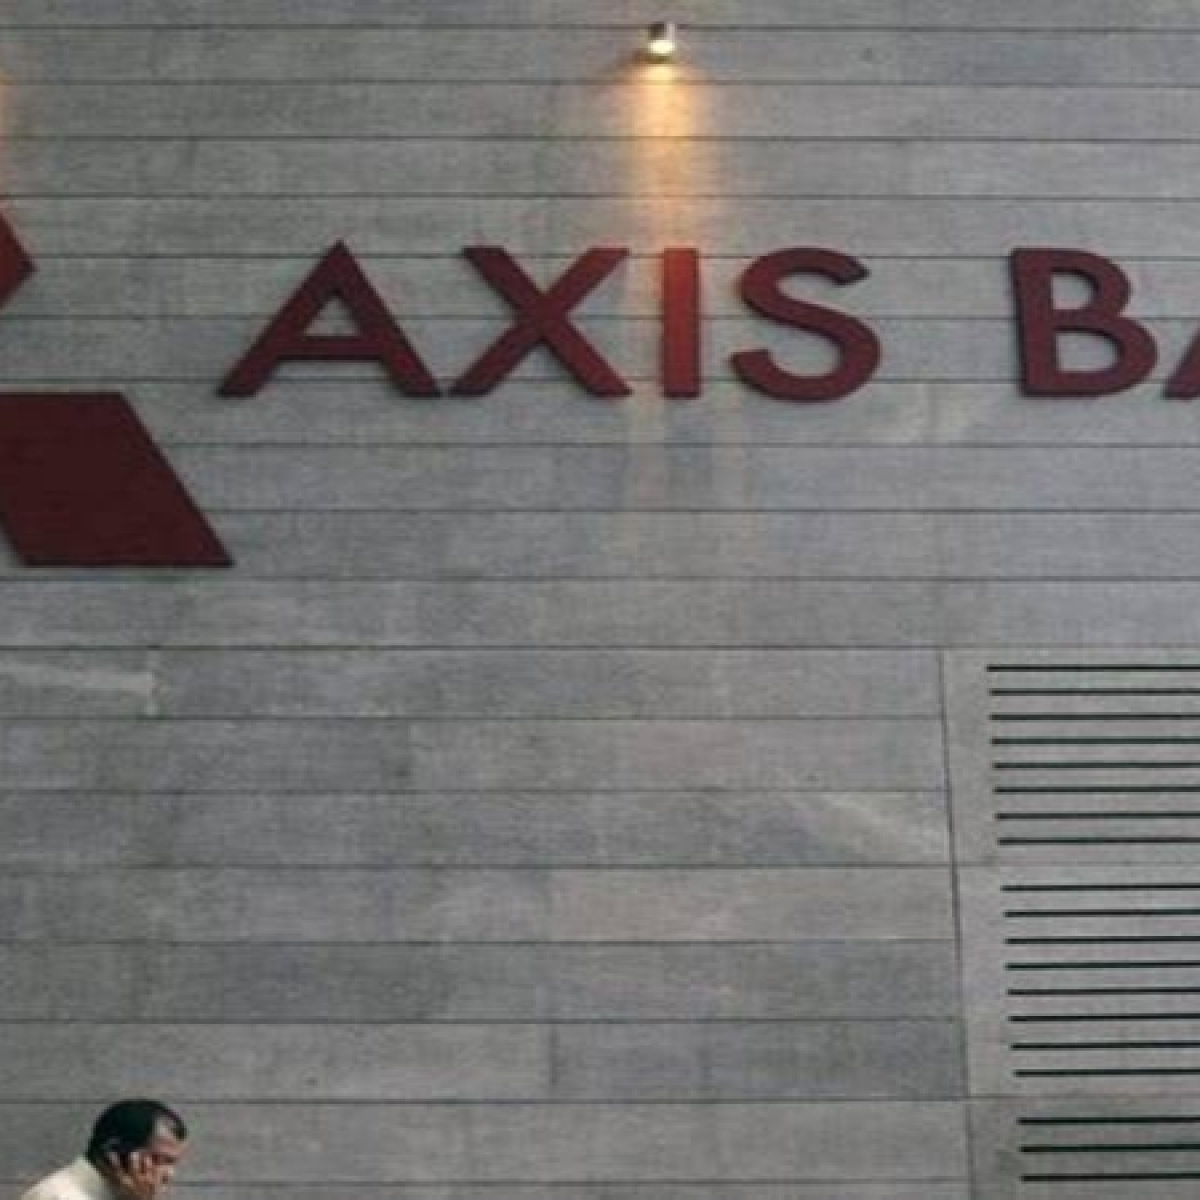 Results: Axis Bank's net profit zooms by 300% to Rs 6,588 crore in FY 2021